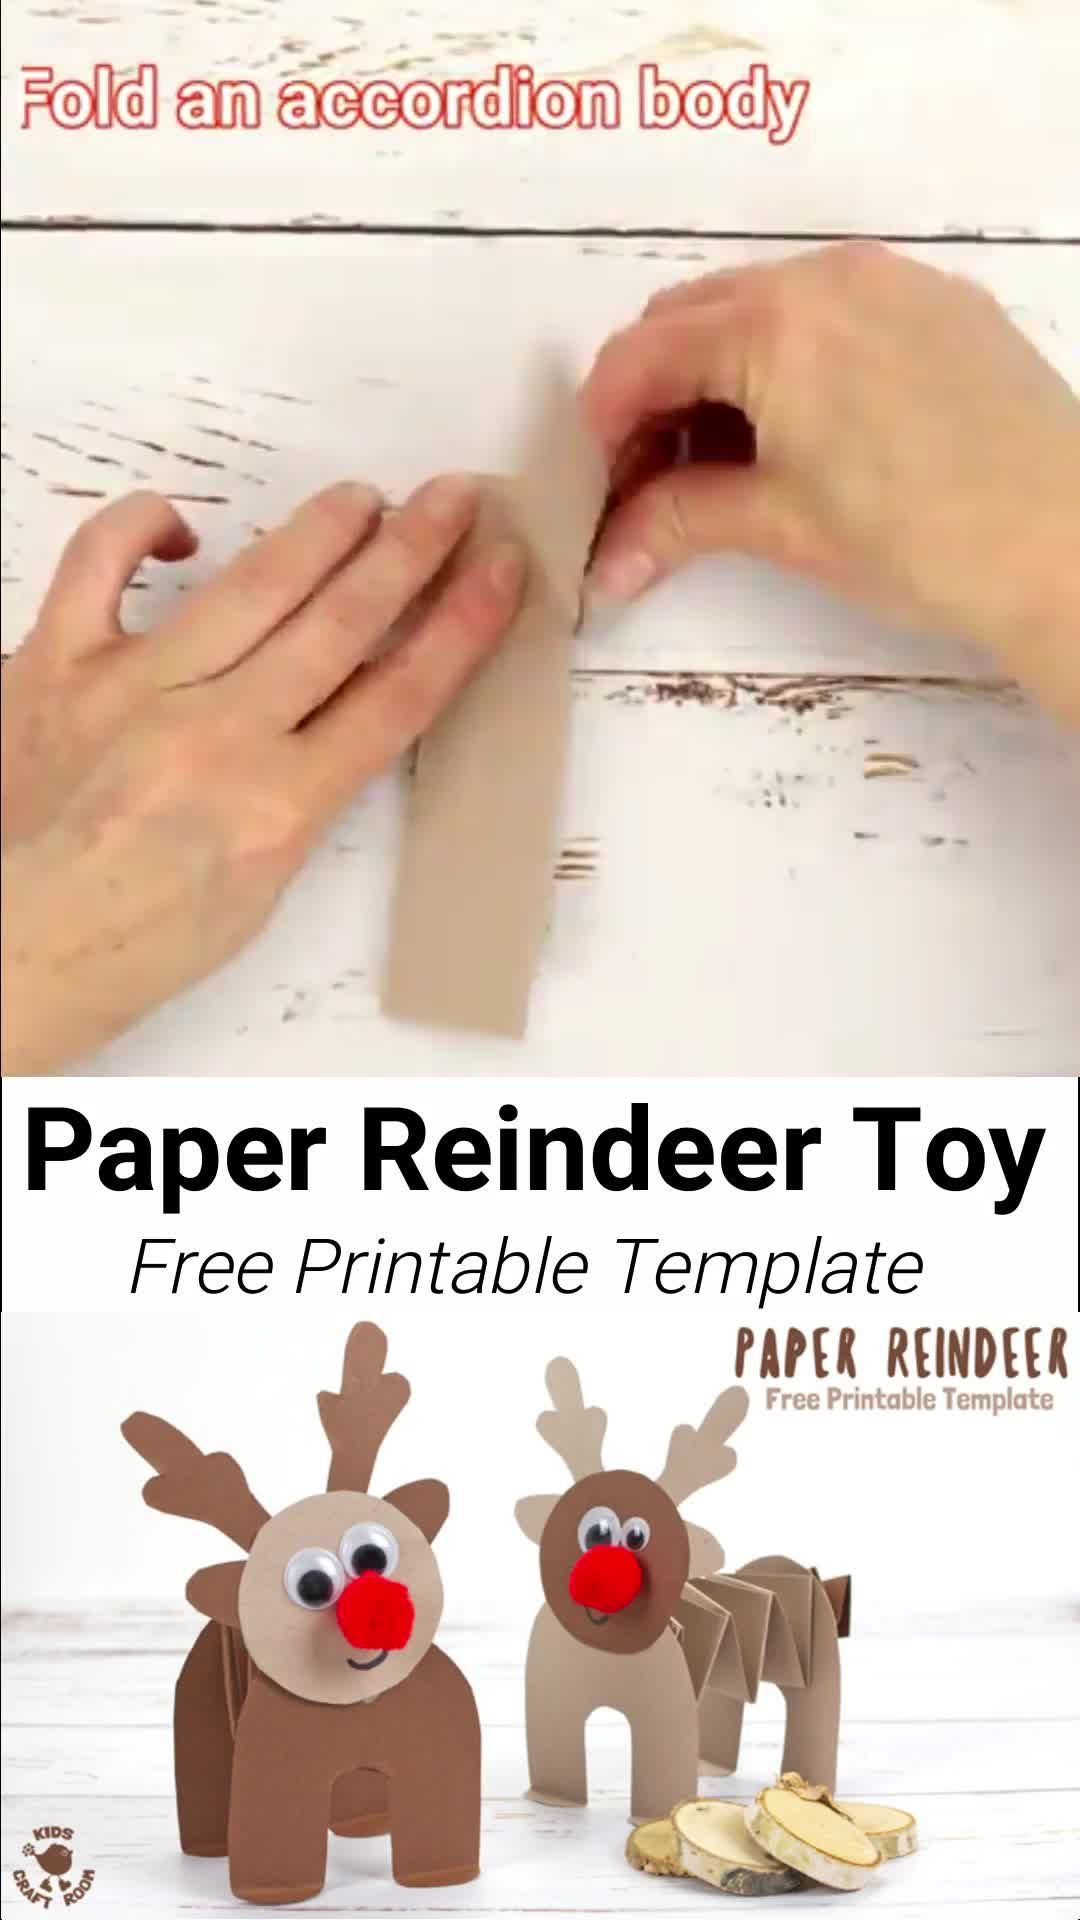 PRINTABLE PAPER REINDEER CRAFT - here's a fun free printable Christmas craft kids can play with. This homemade paper reindeer toy has a simple but cleverly folded body that allows it to stand up and be walked along by little hands. The accordion folds work like a spring so the paper reindeer can bounce up and down on their bottoms! So much fun! A free printable holiday craft kids will love. #kidscraftroom #reindeercrafts #christmascrafts #papercrafts #printablecrafts #printables #kidscrafts #christmascraftsforkidstomake